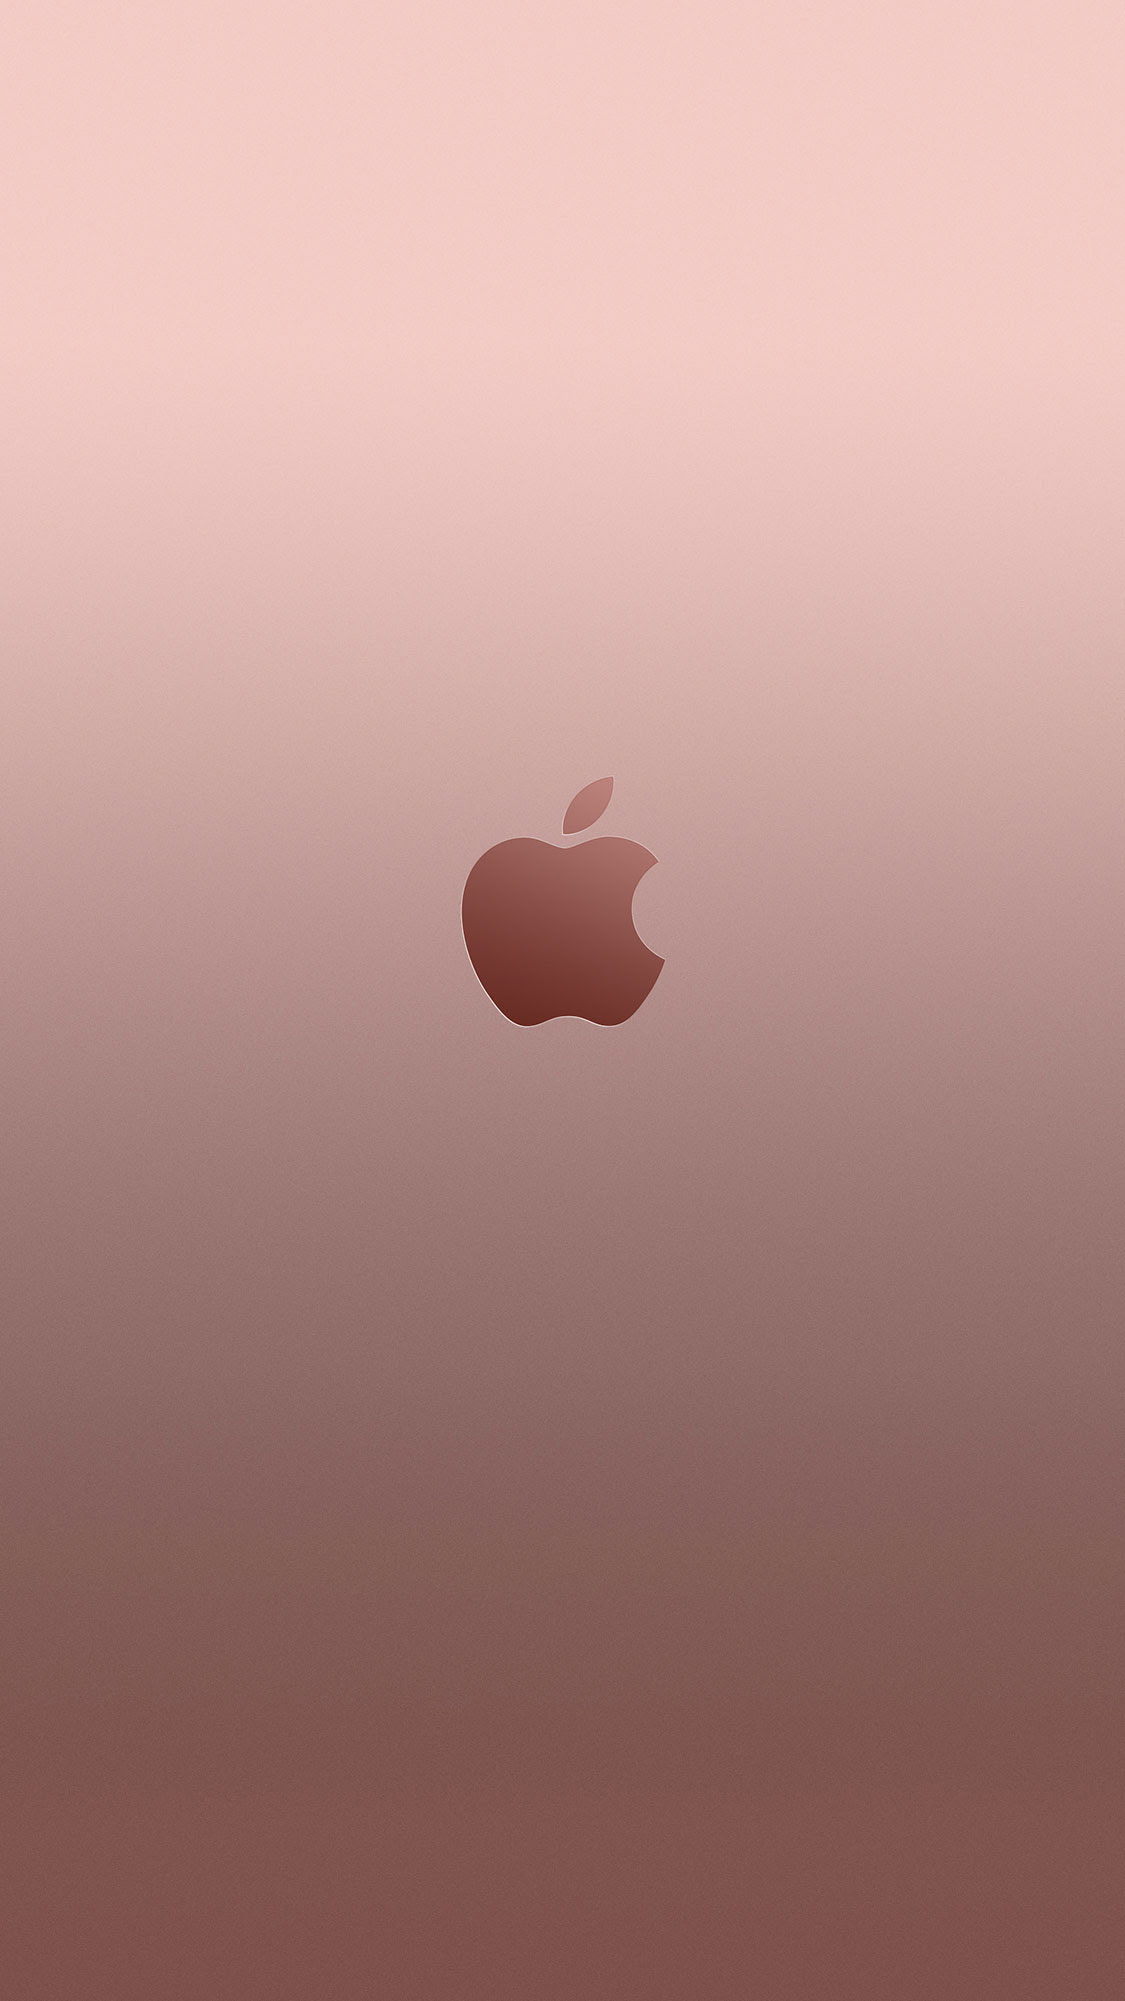 20+ New iPhone 6 & 6S Wallpapers & Backgrounds in HD ...